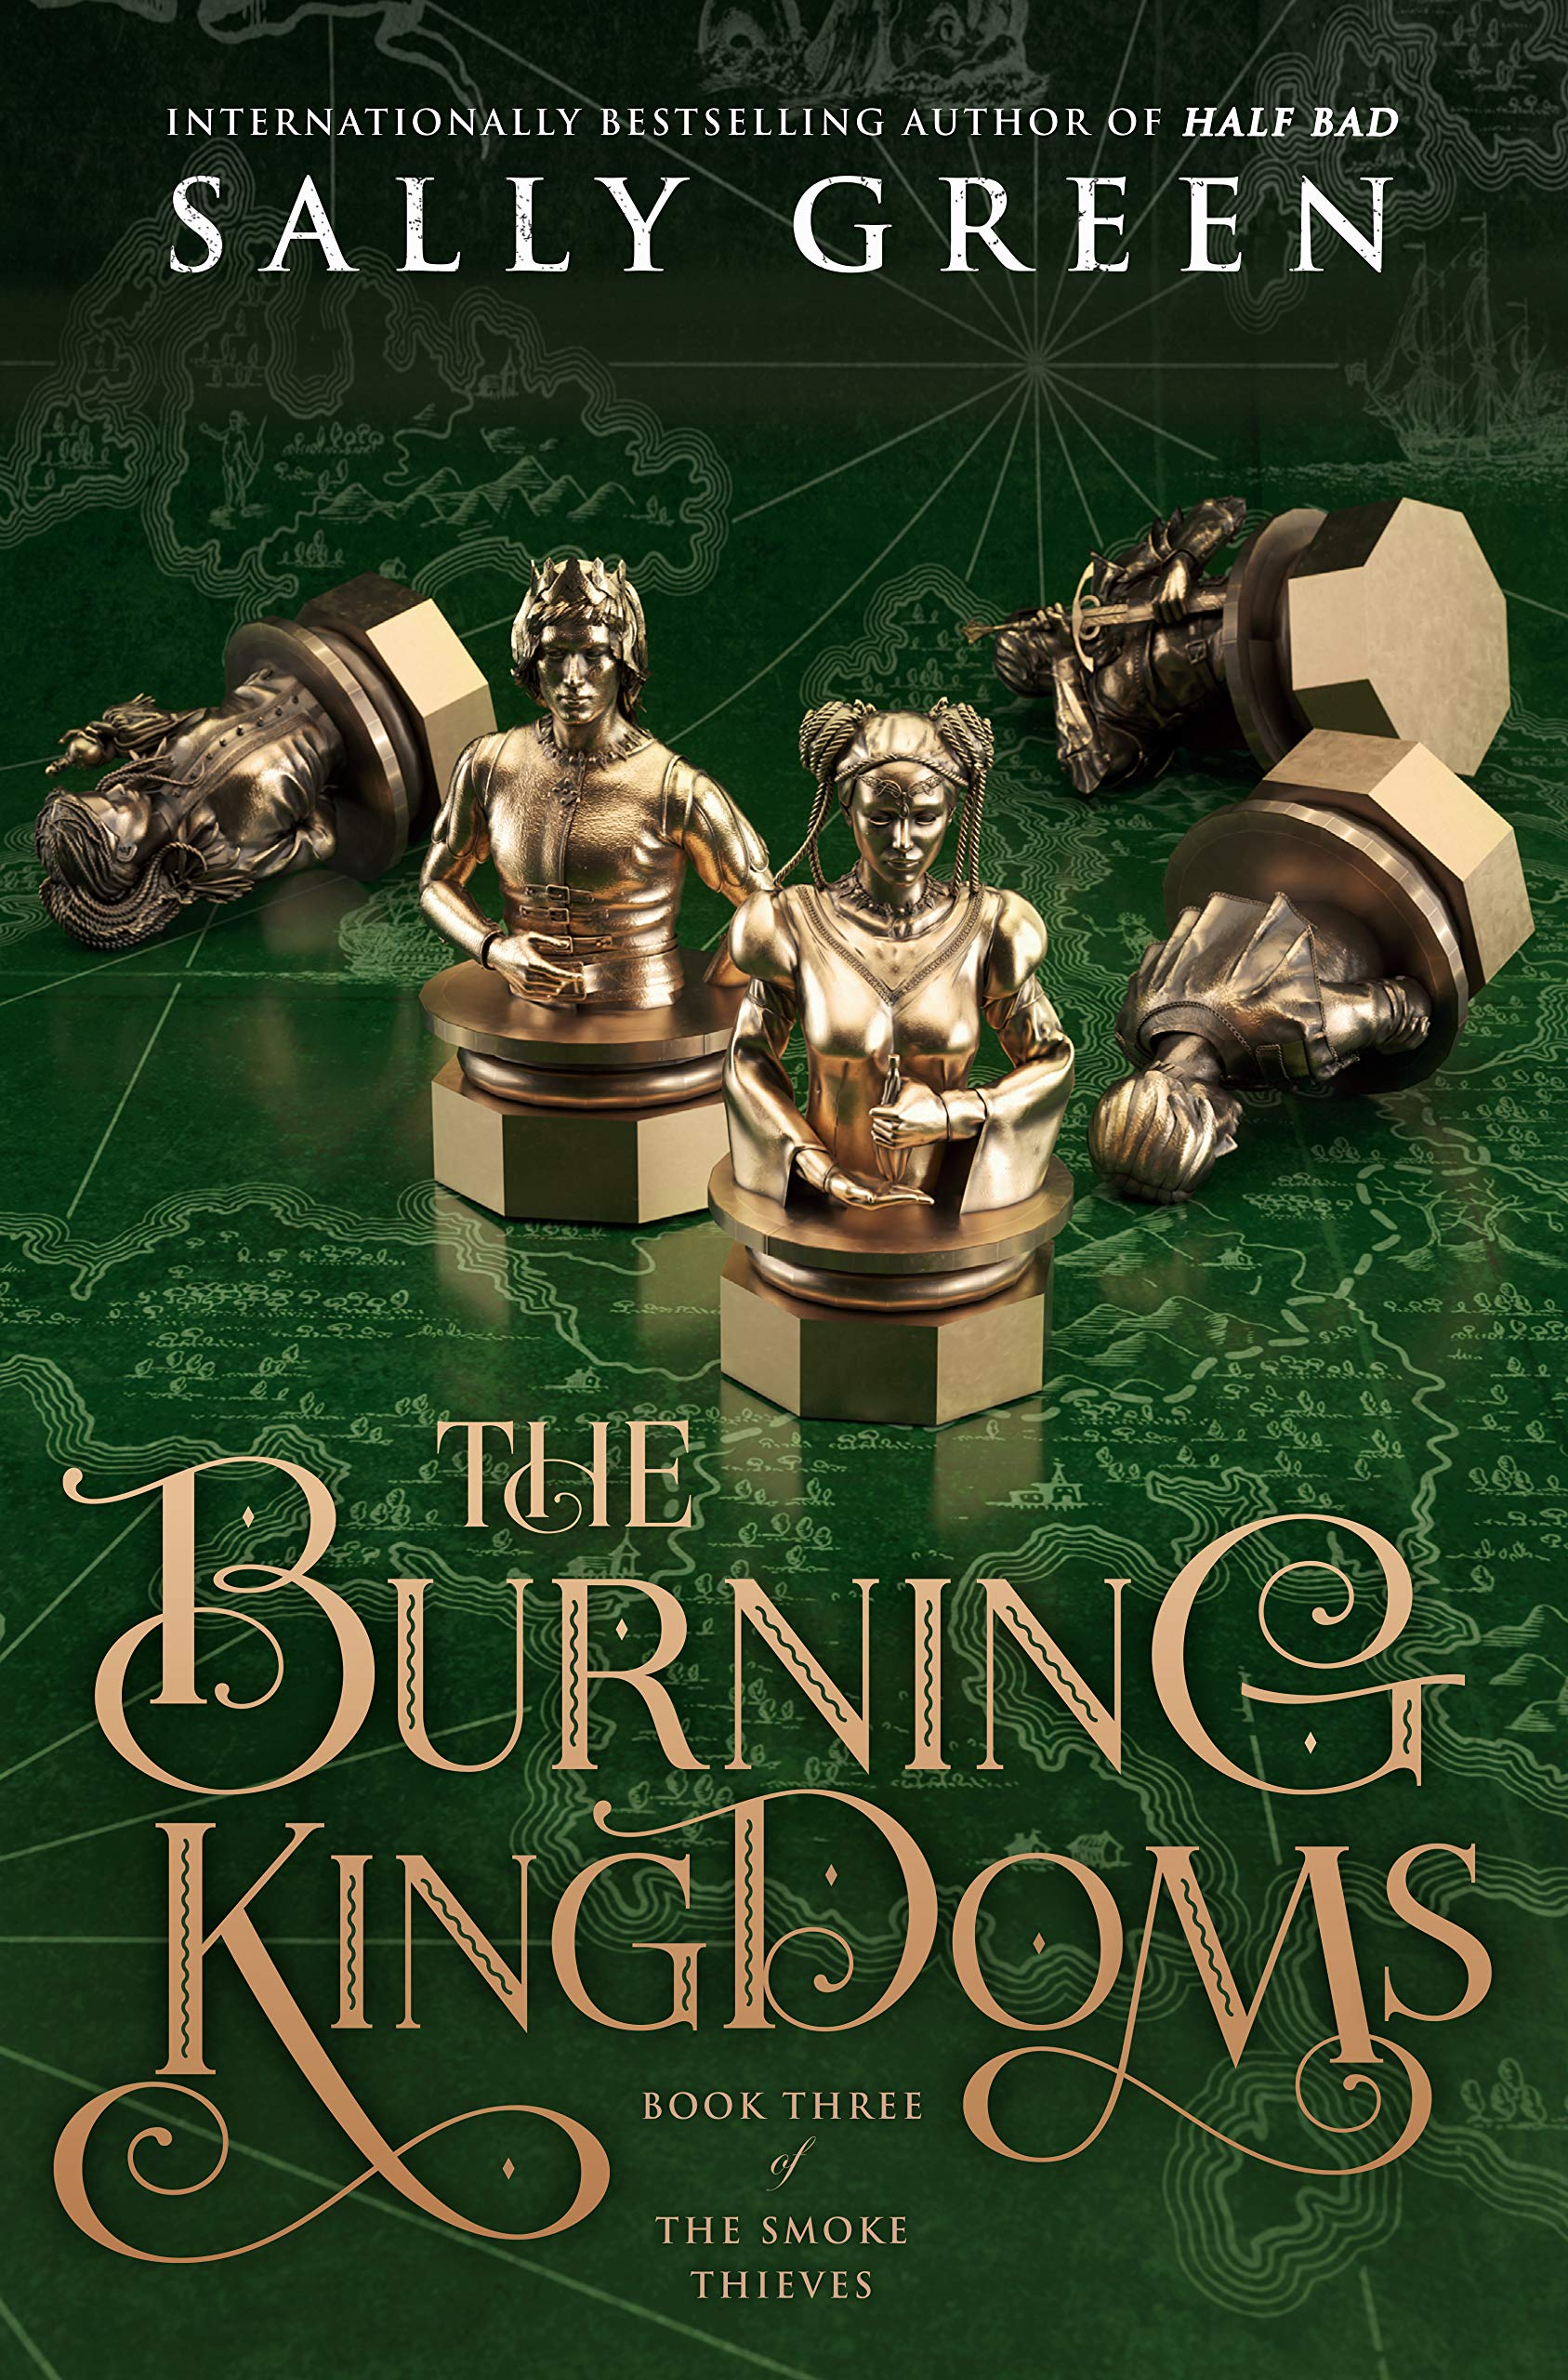 Amazon.com: The Burning Kingdoms (The Smoke Thieves ...